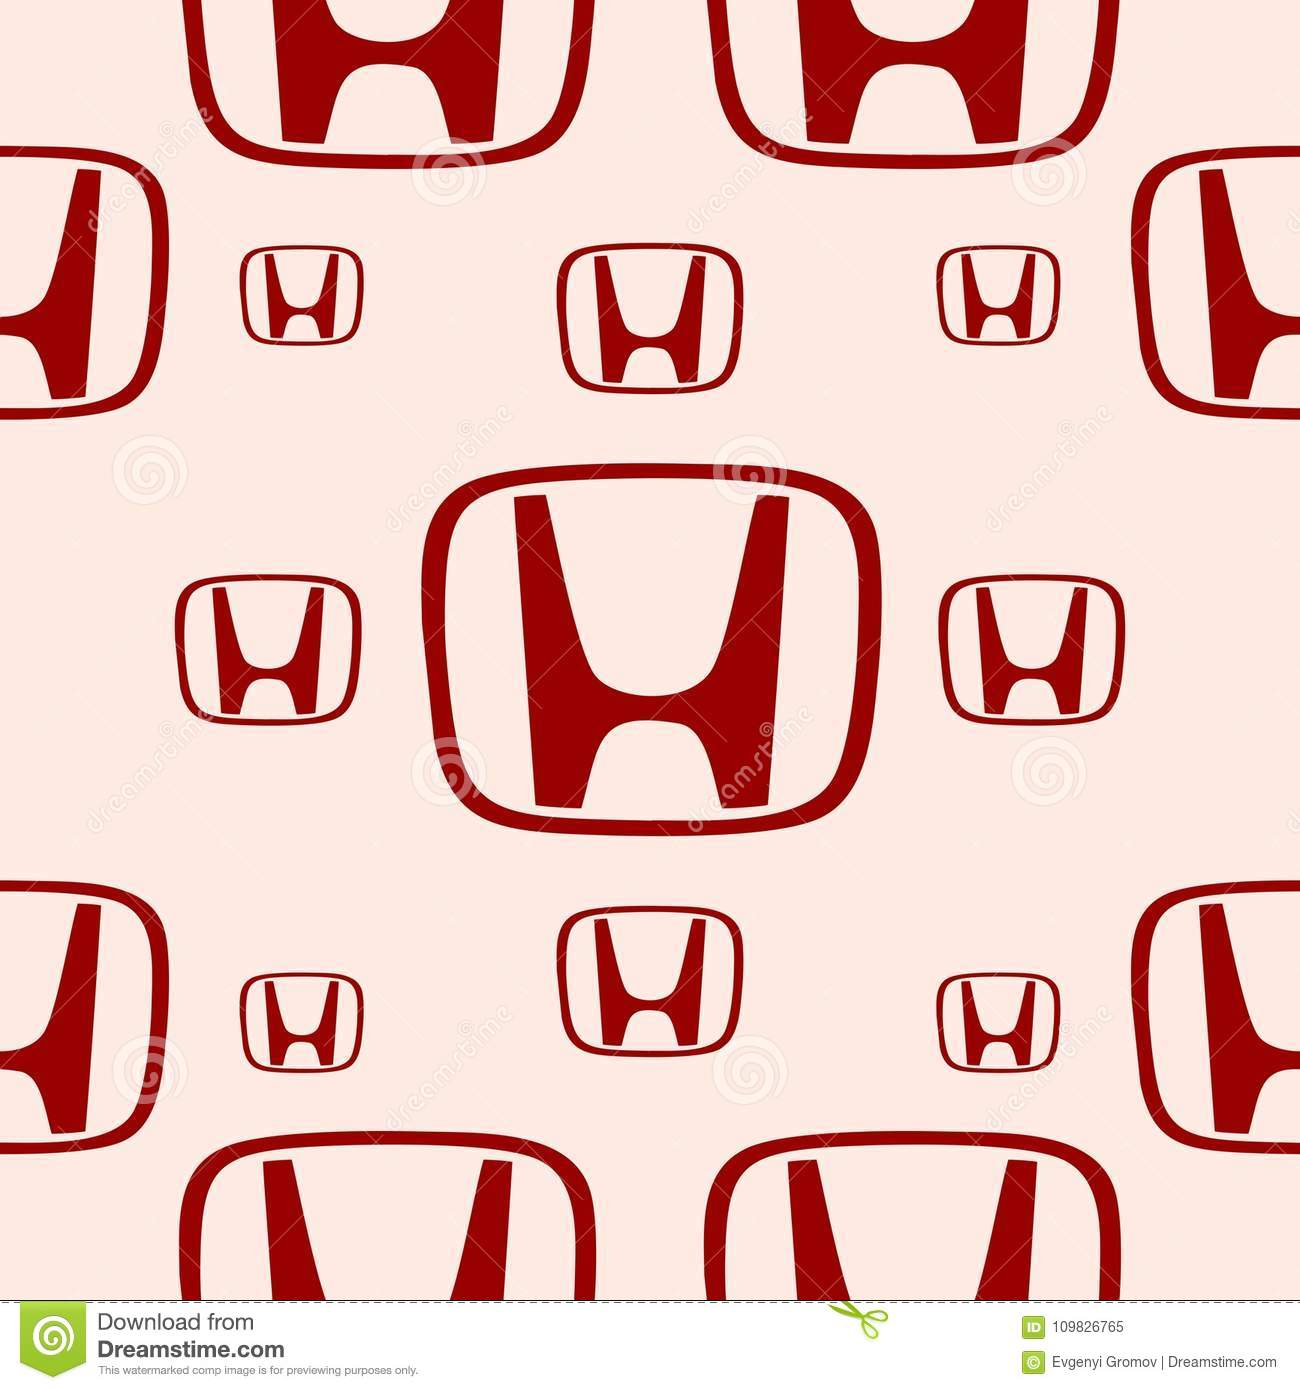 Download Honda Car Emblem Editorial Image Illustration Of Famous